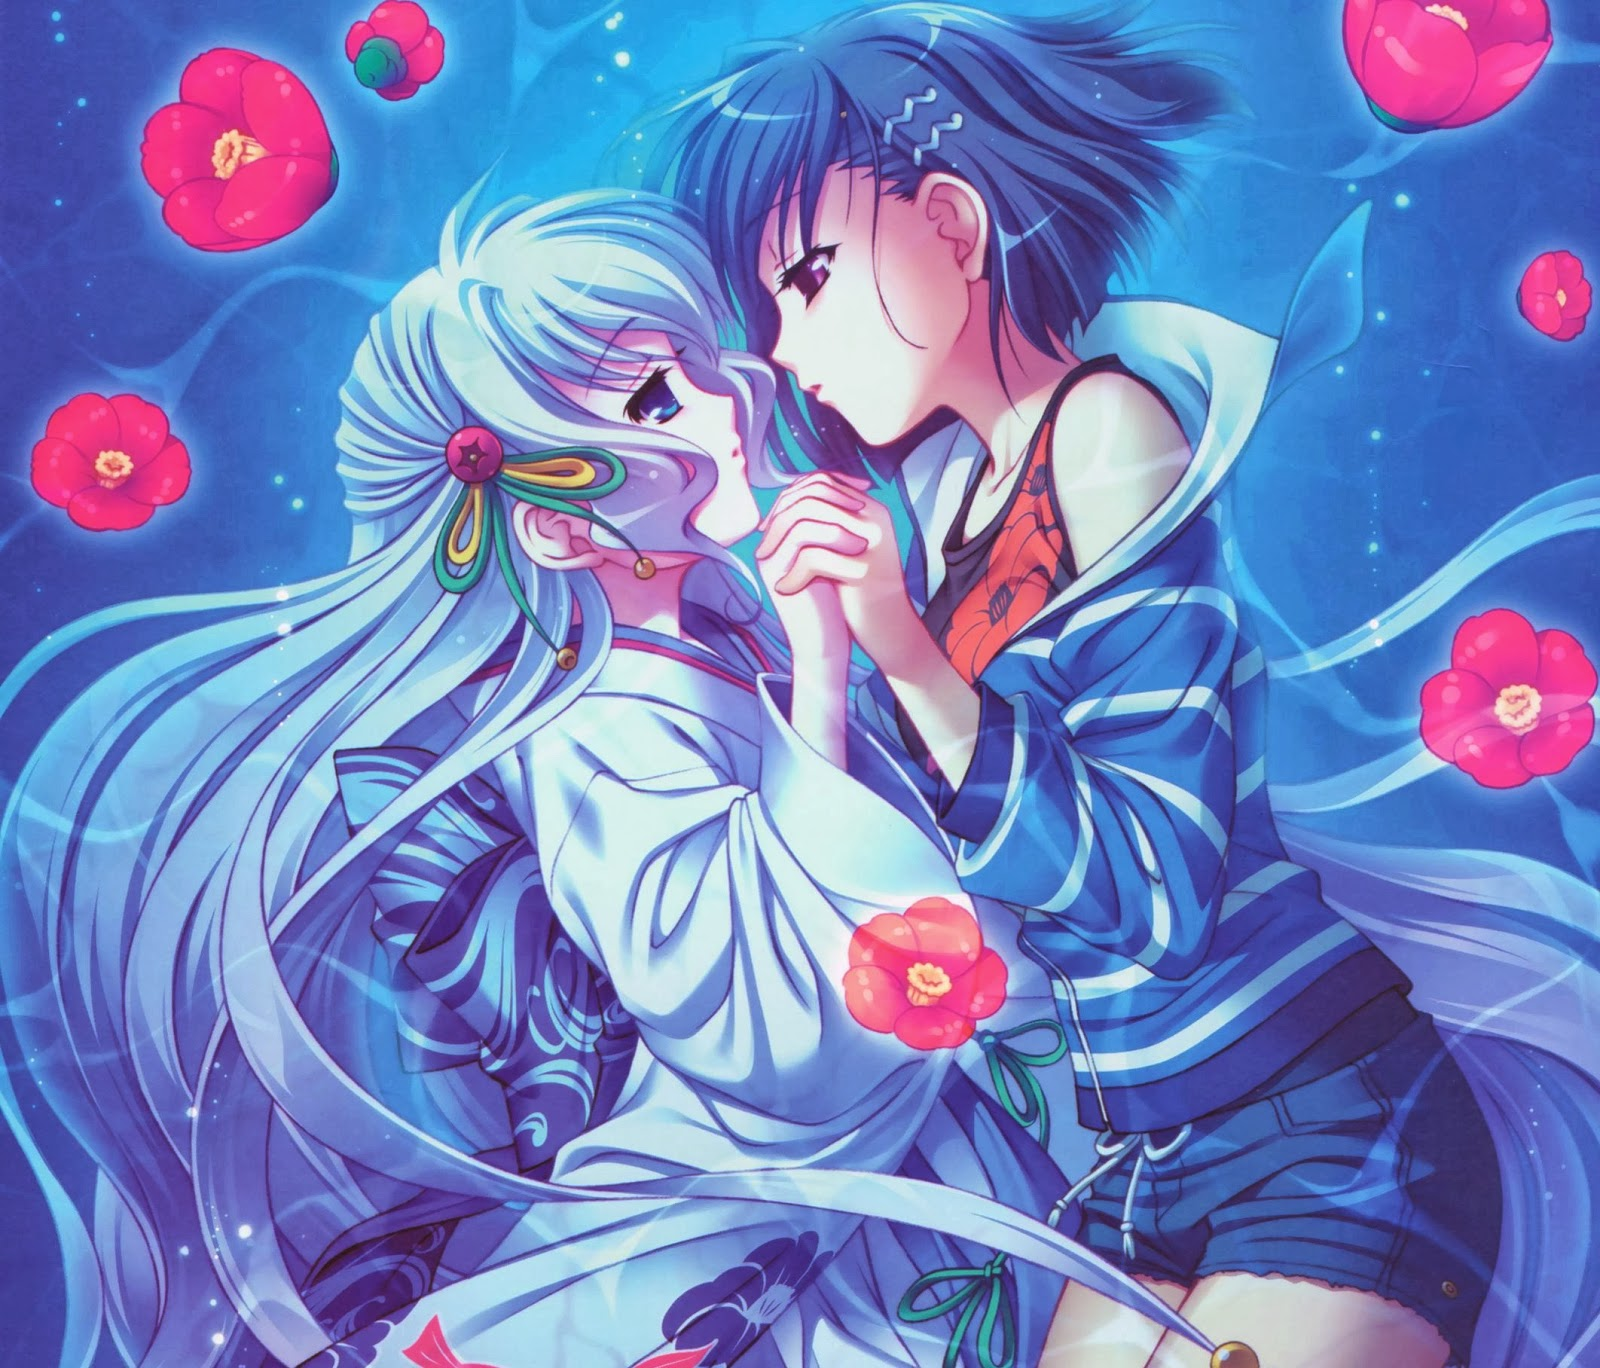 Pin by Just Weekends on draw & anime   Yuri anime girls